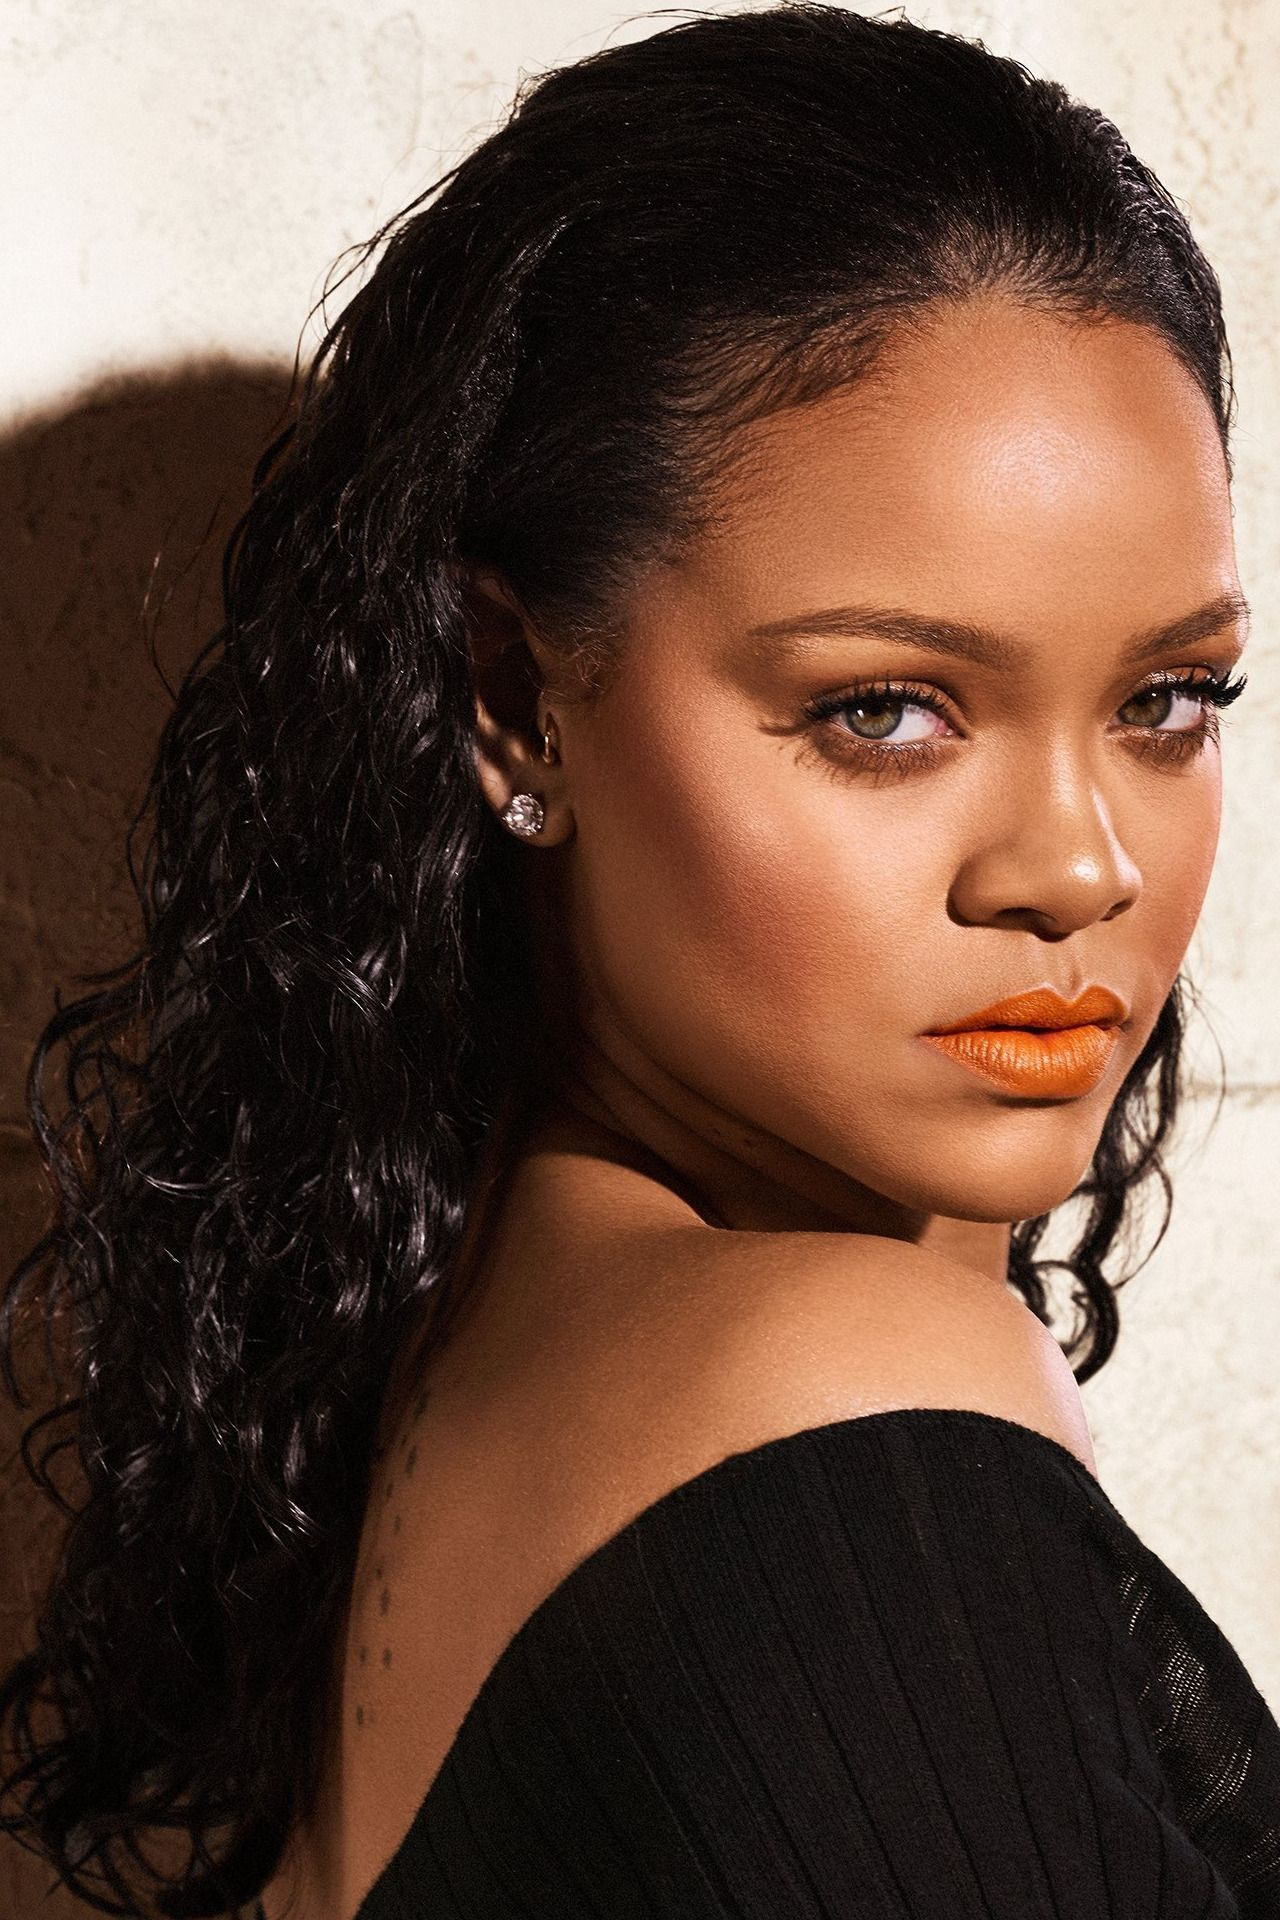 Black Girl Makeup Rihanna fenty beauty, Fenty beauty